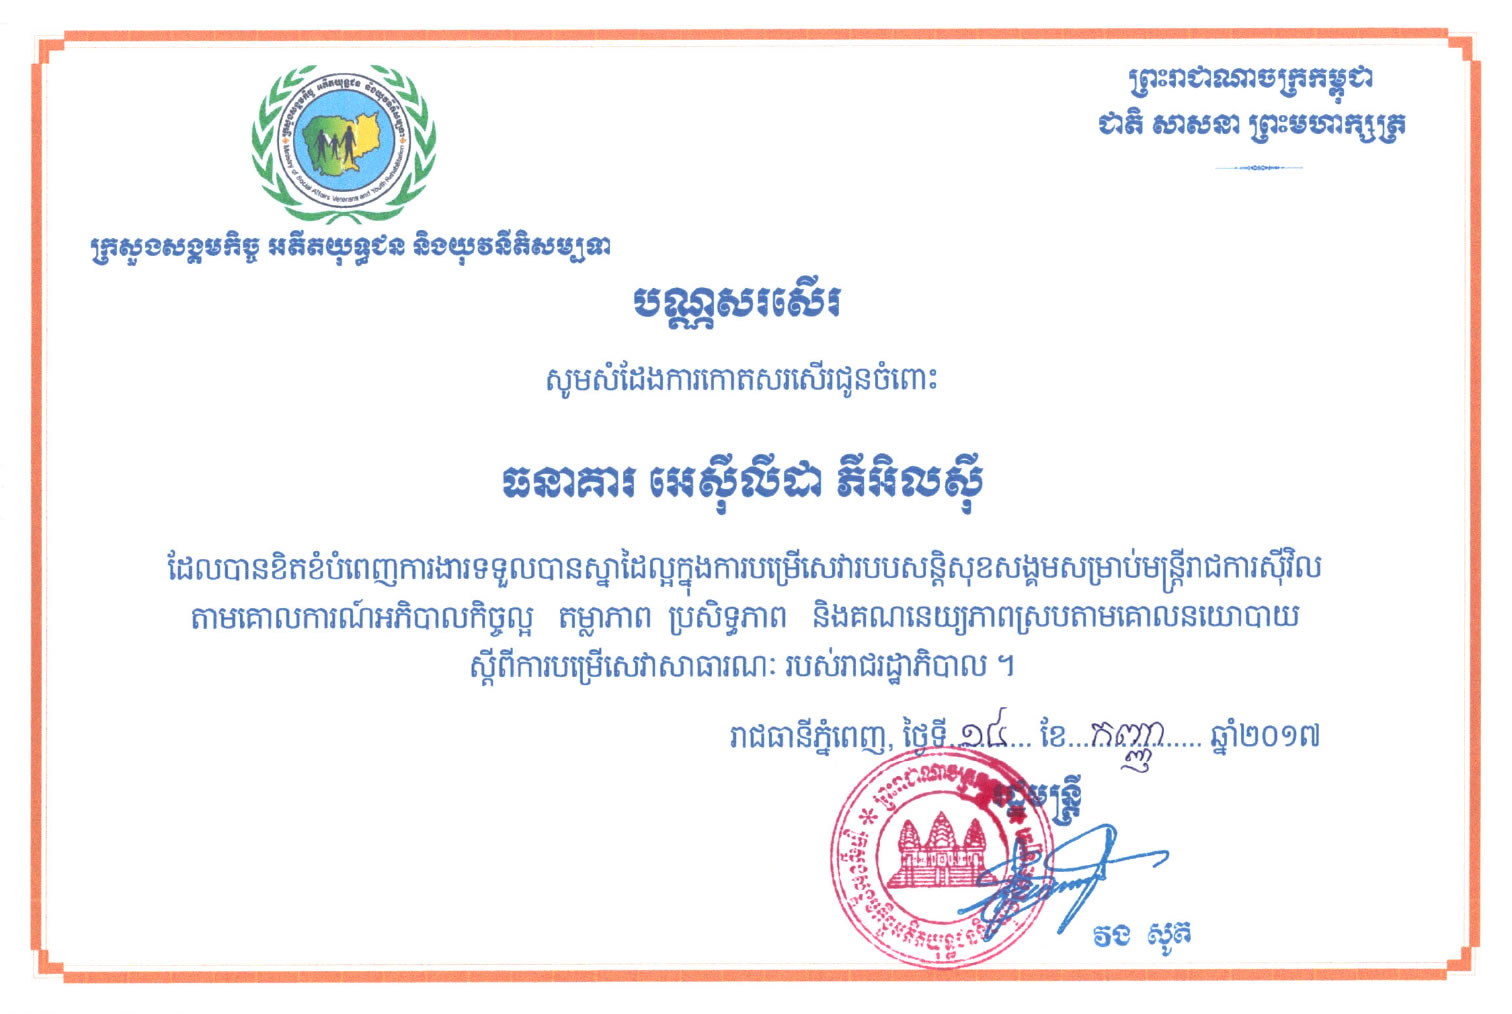 Acleda bank plc cambodia certificate of appreciation from the ministry of social affairs veterans and youth rehabilitation xflitez Choice Image